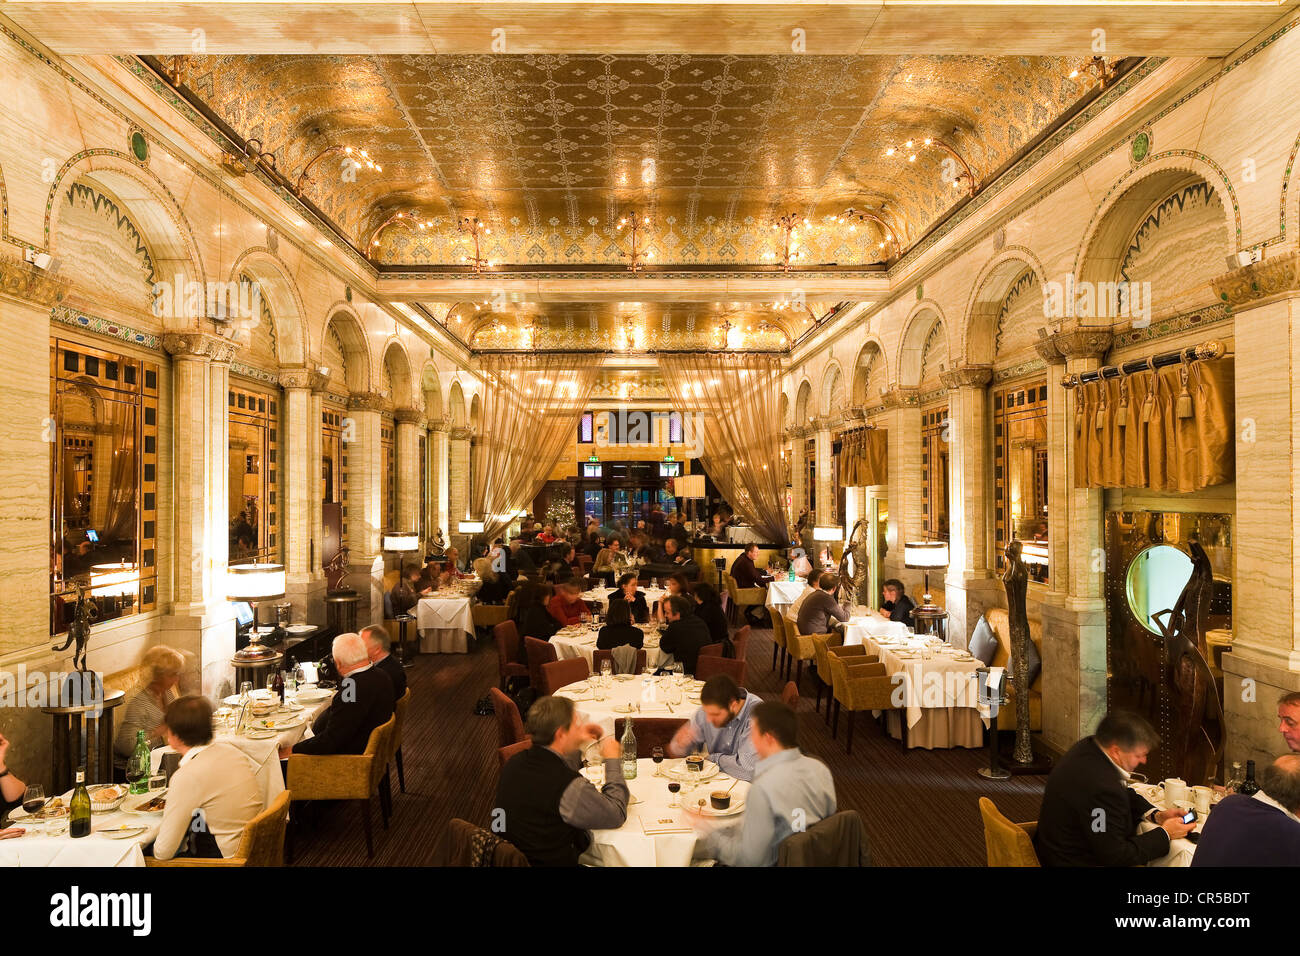 United Kingdom, London, Piccadilly, Criterion restaurant with its neo-byzantine style where Conan Doyle used to - Stock Image